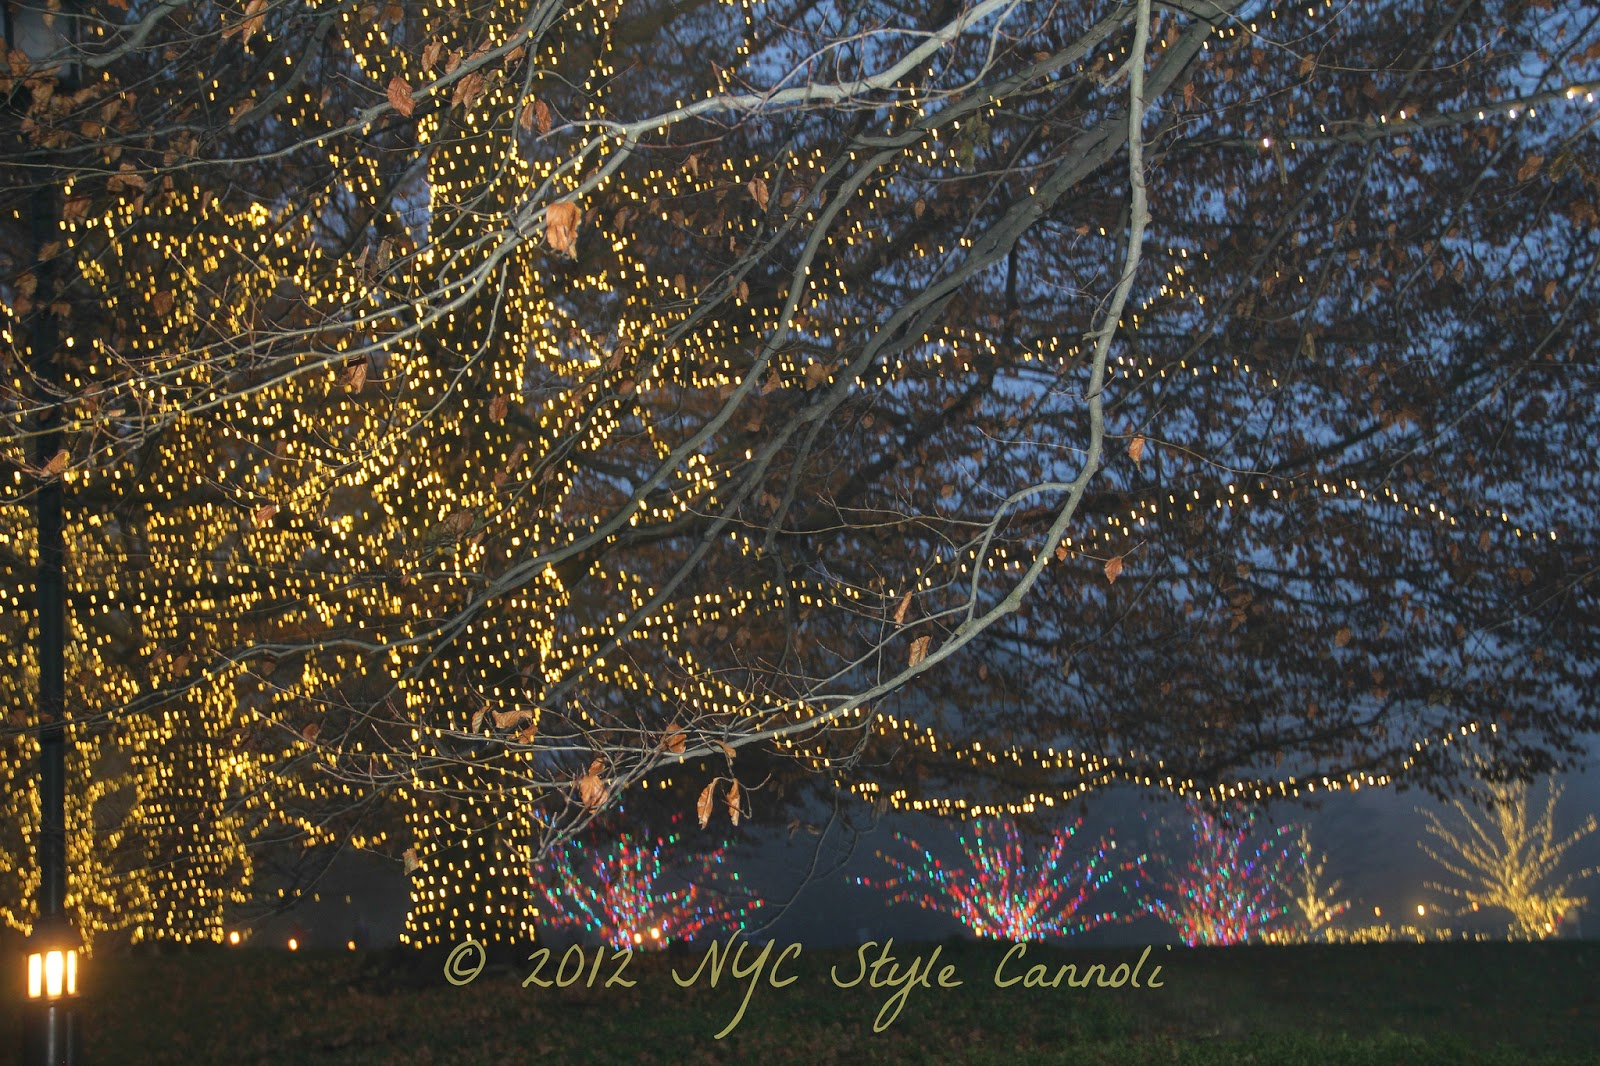 A Trip to Longwood Gardens at Christmas | NYC, Style & a little Cannoli